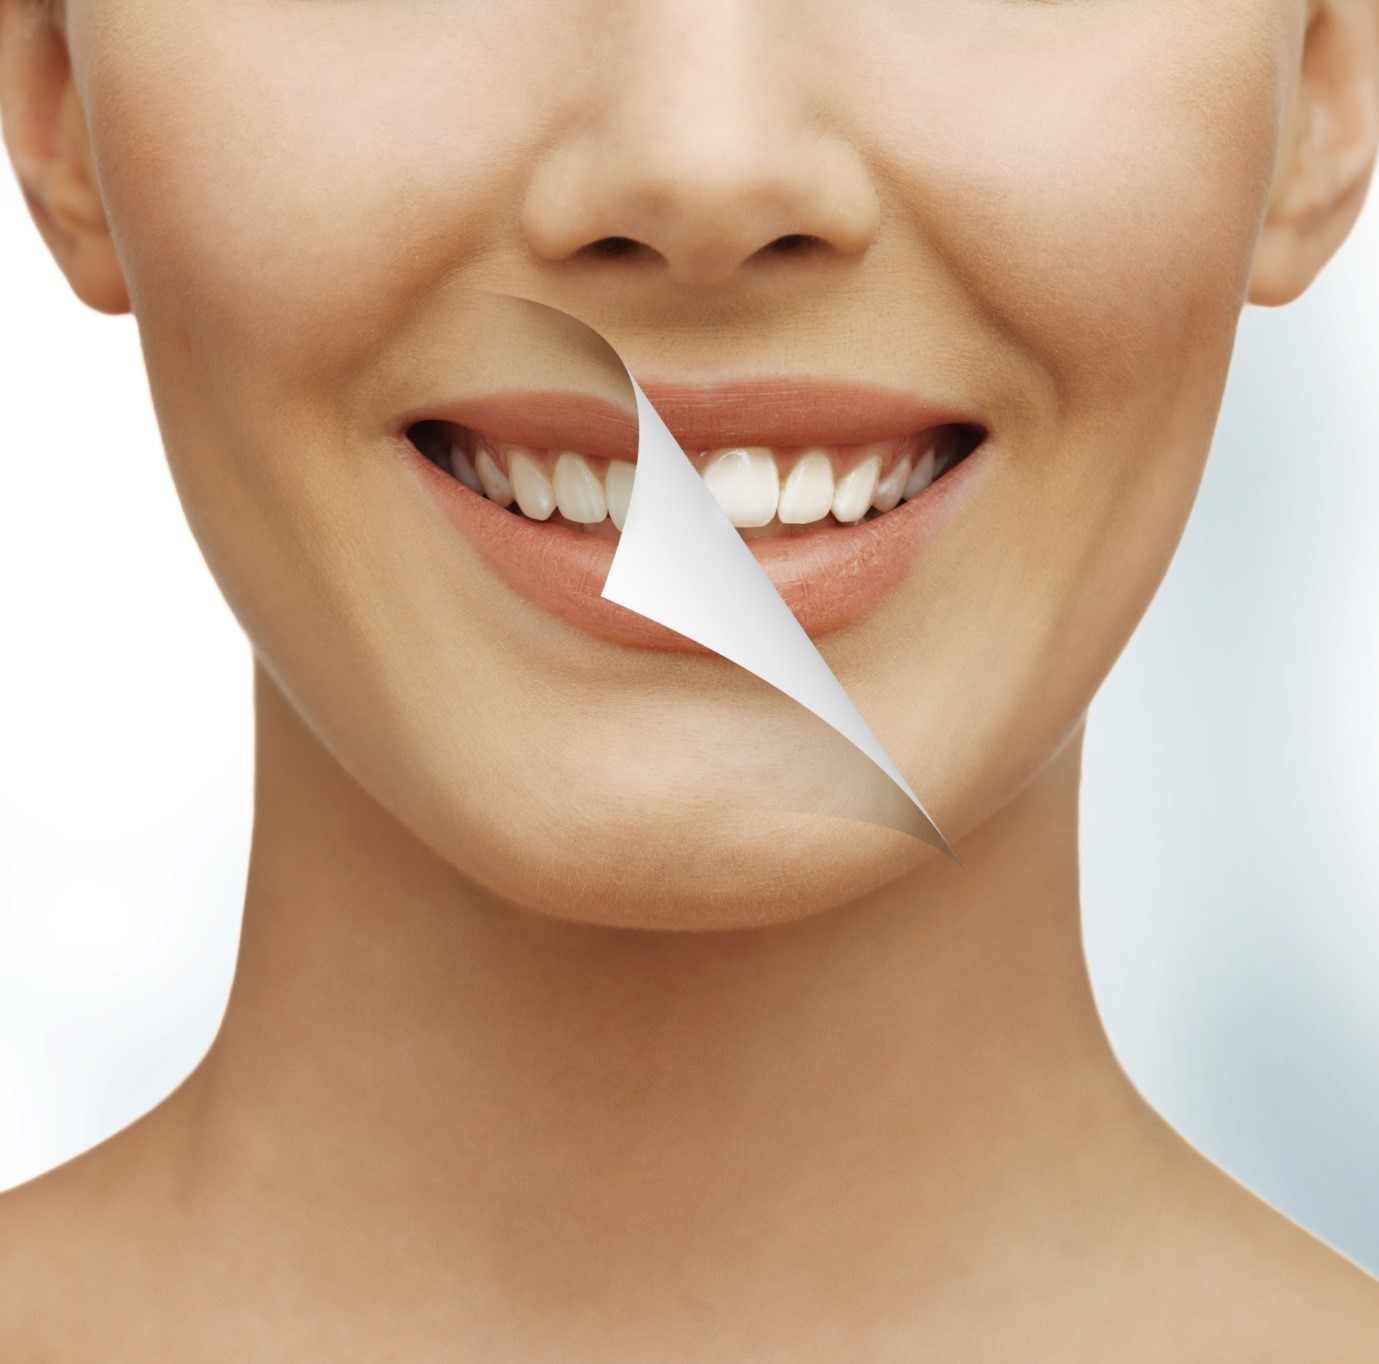 How to Prevent Staining of Teeth from Smoking?